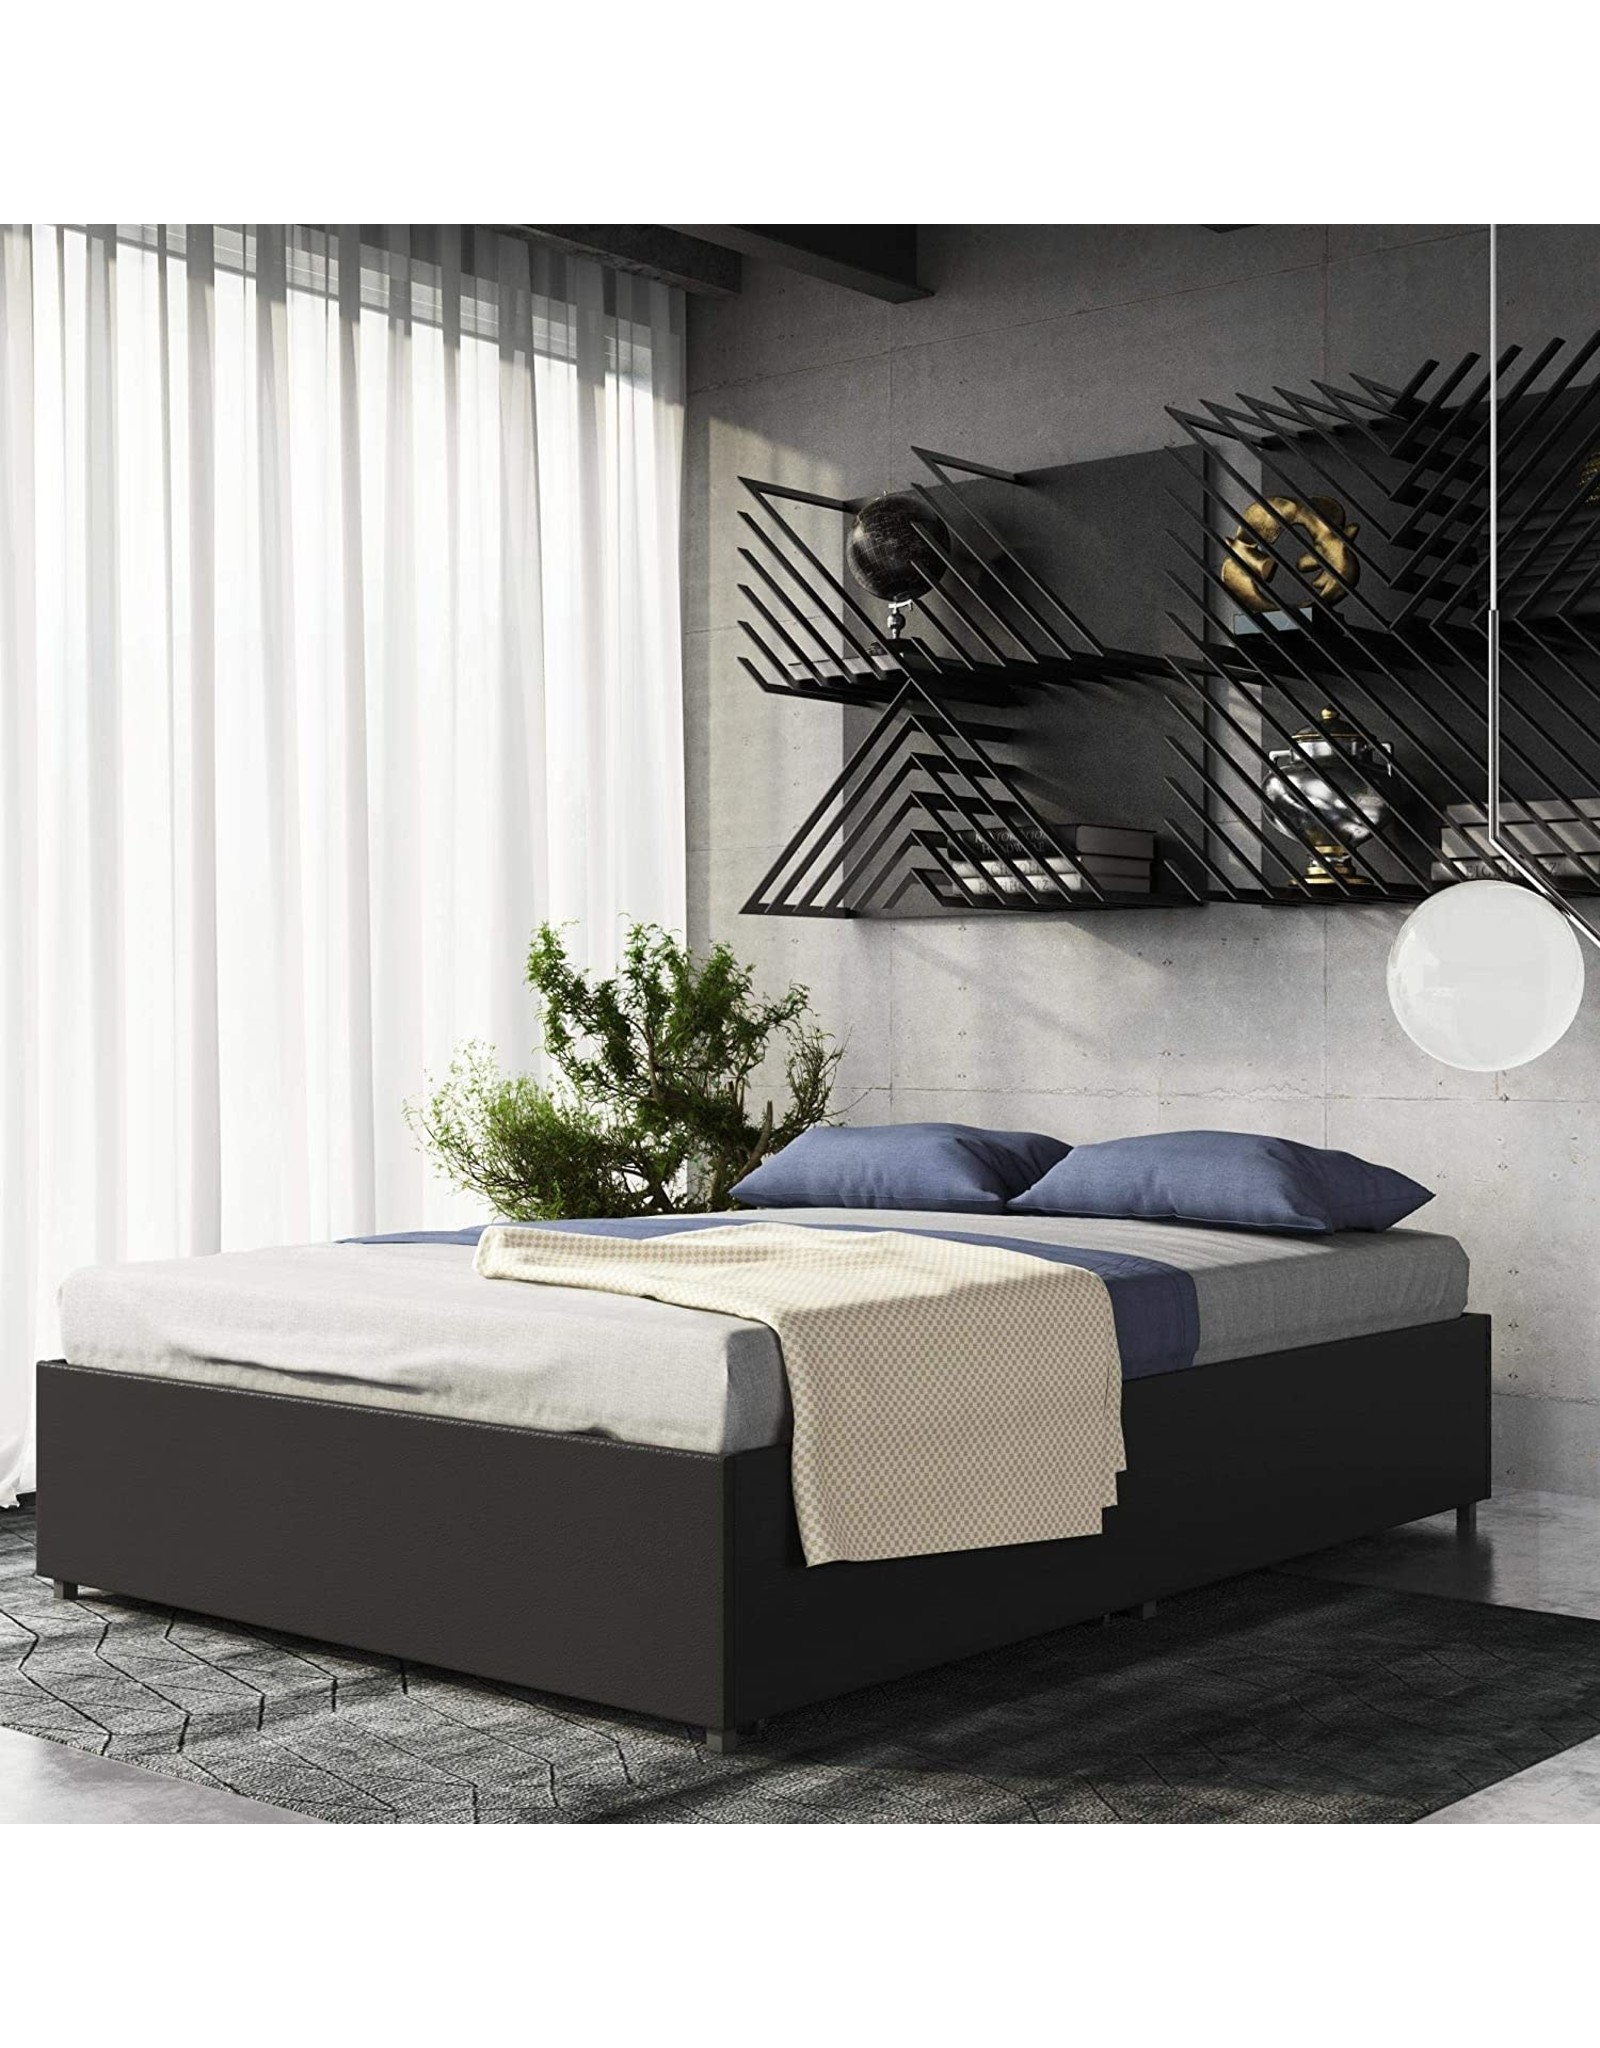 DHP DHP Maven Platform Bed with Upholstered Faux Leather and Wooden Slat Support and Under Bed Storage, Queen Size - Black